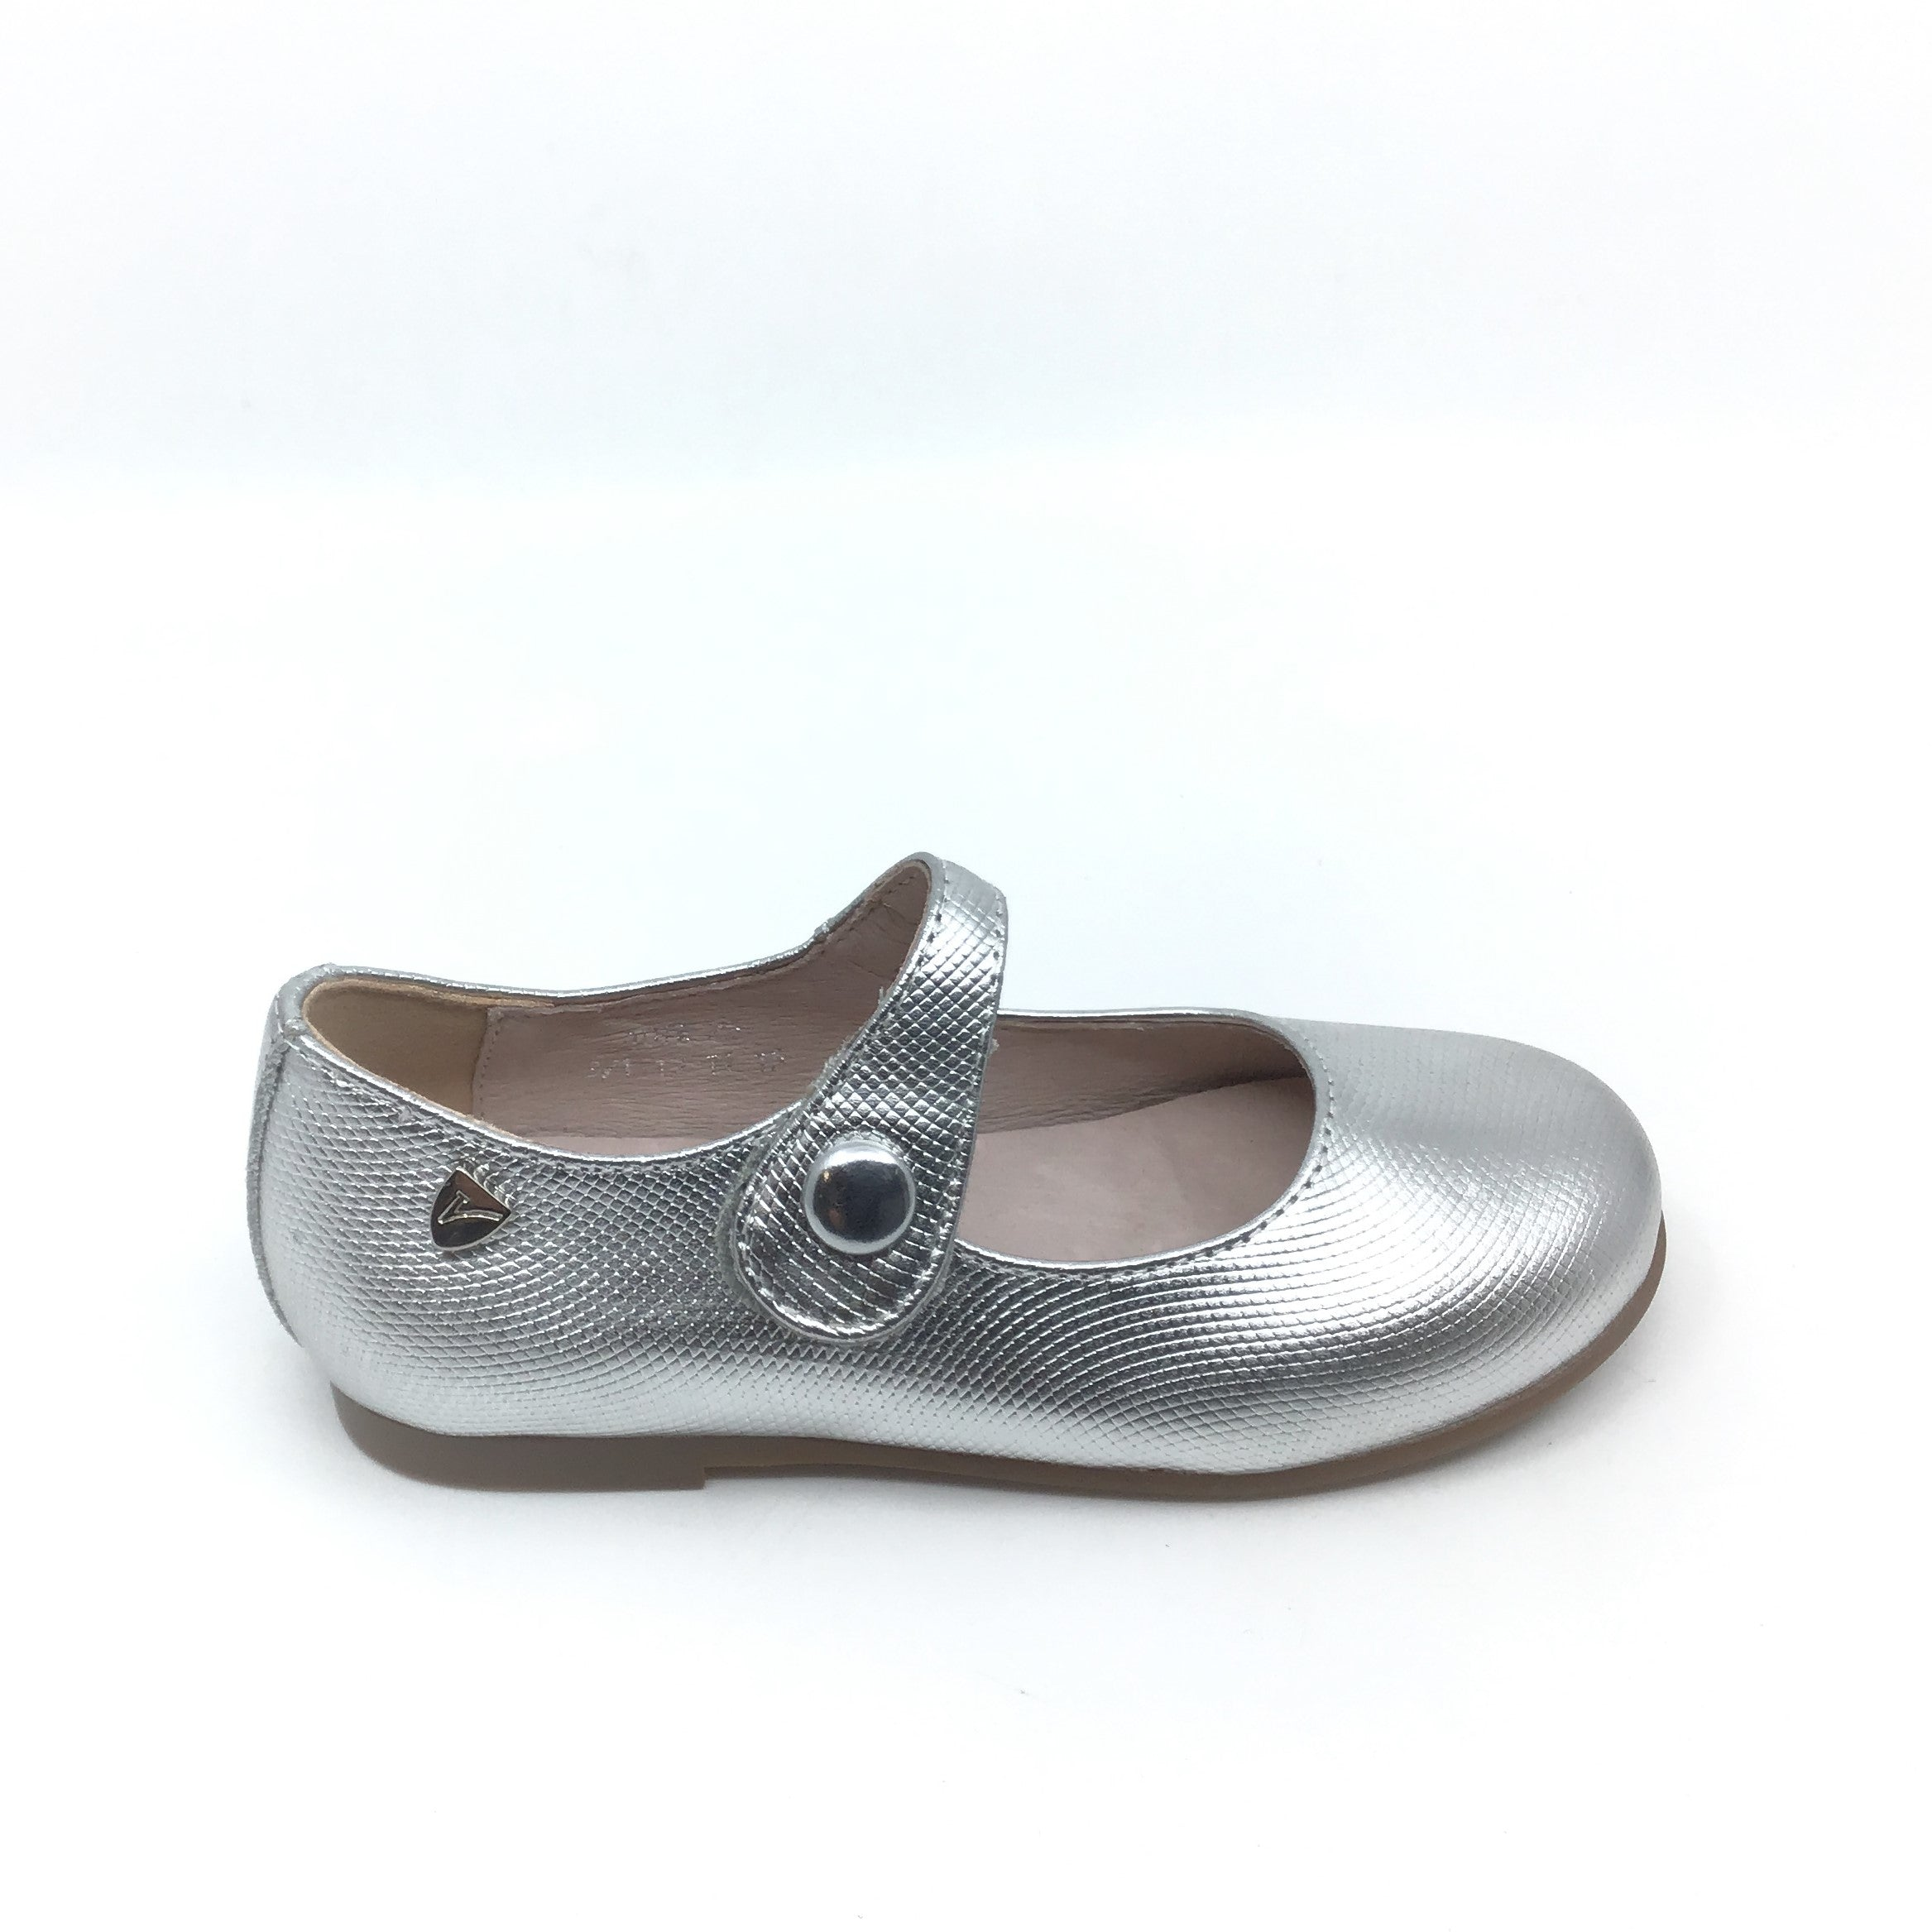 Venettini Silver Textured Mary Jane